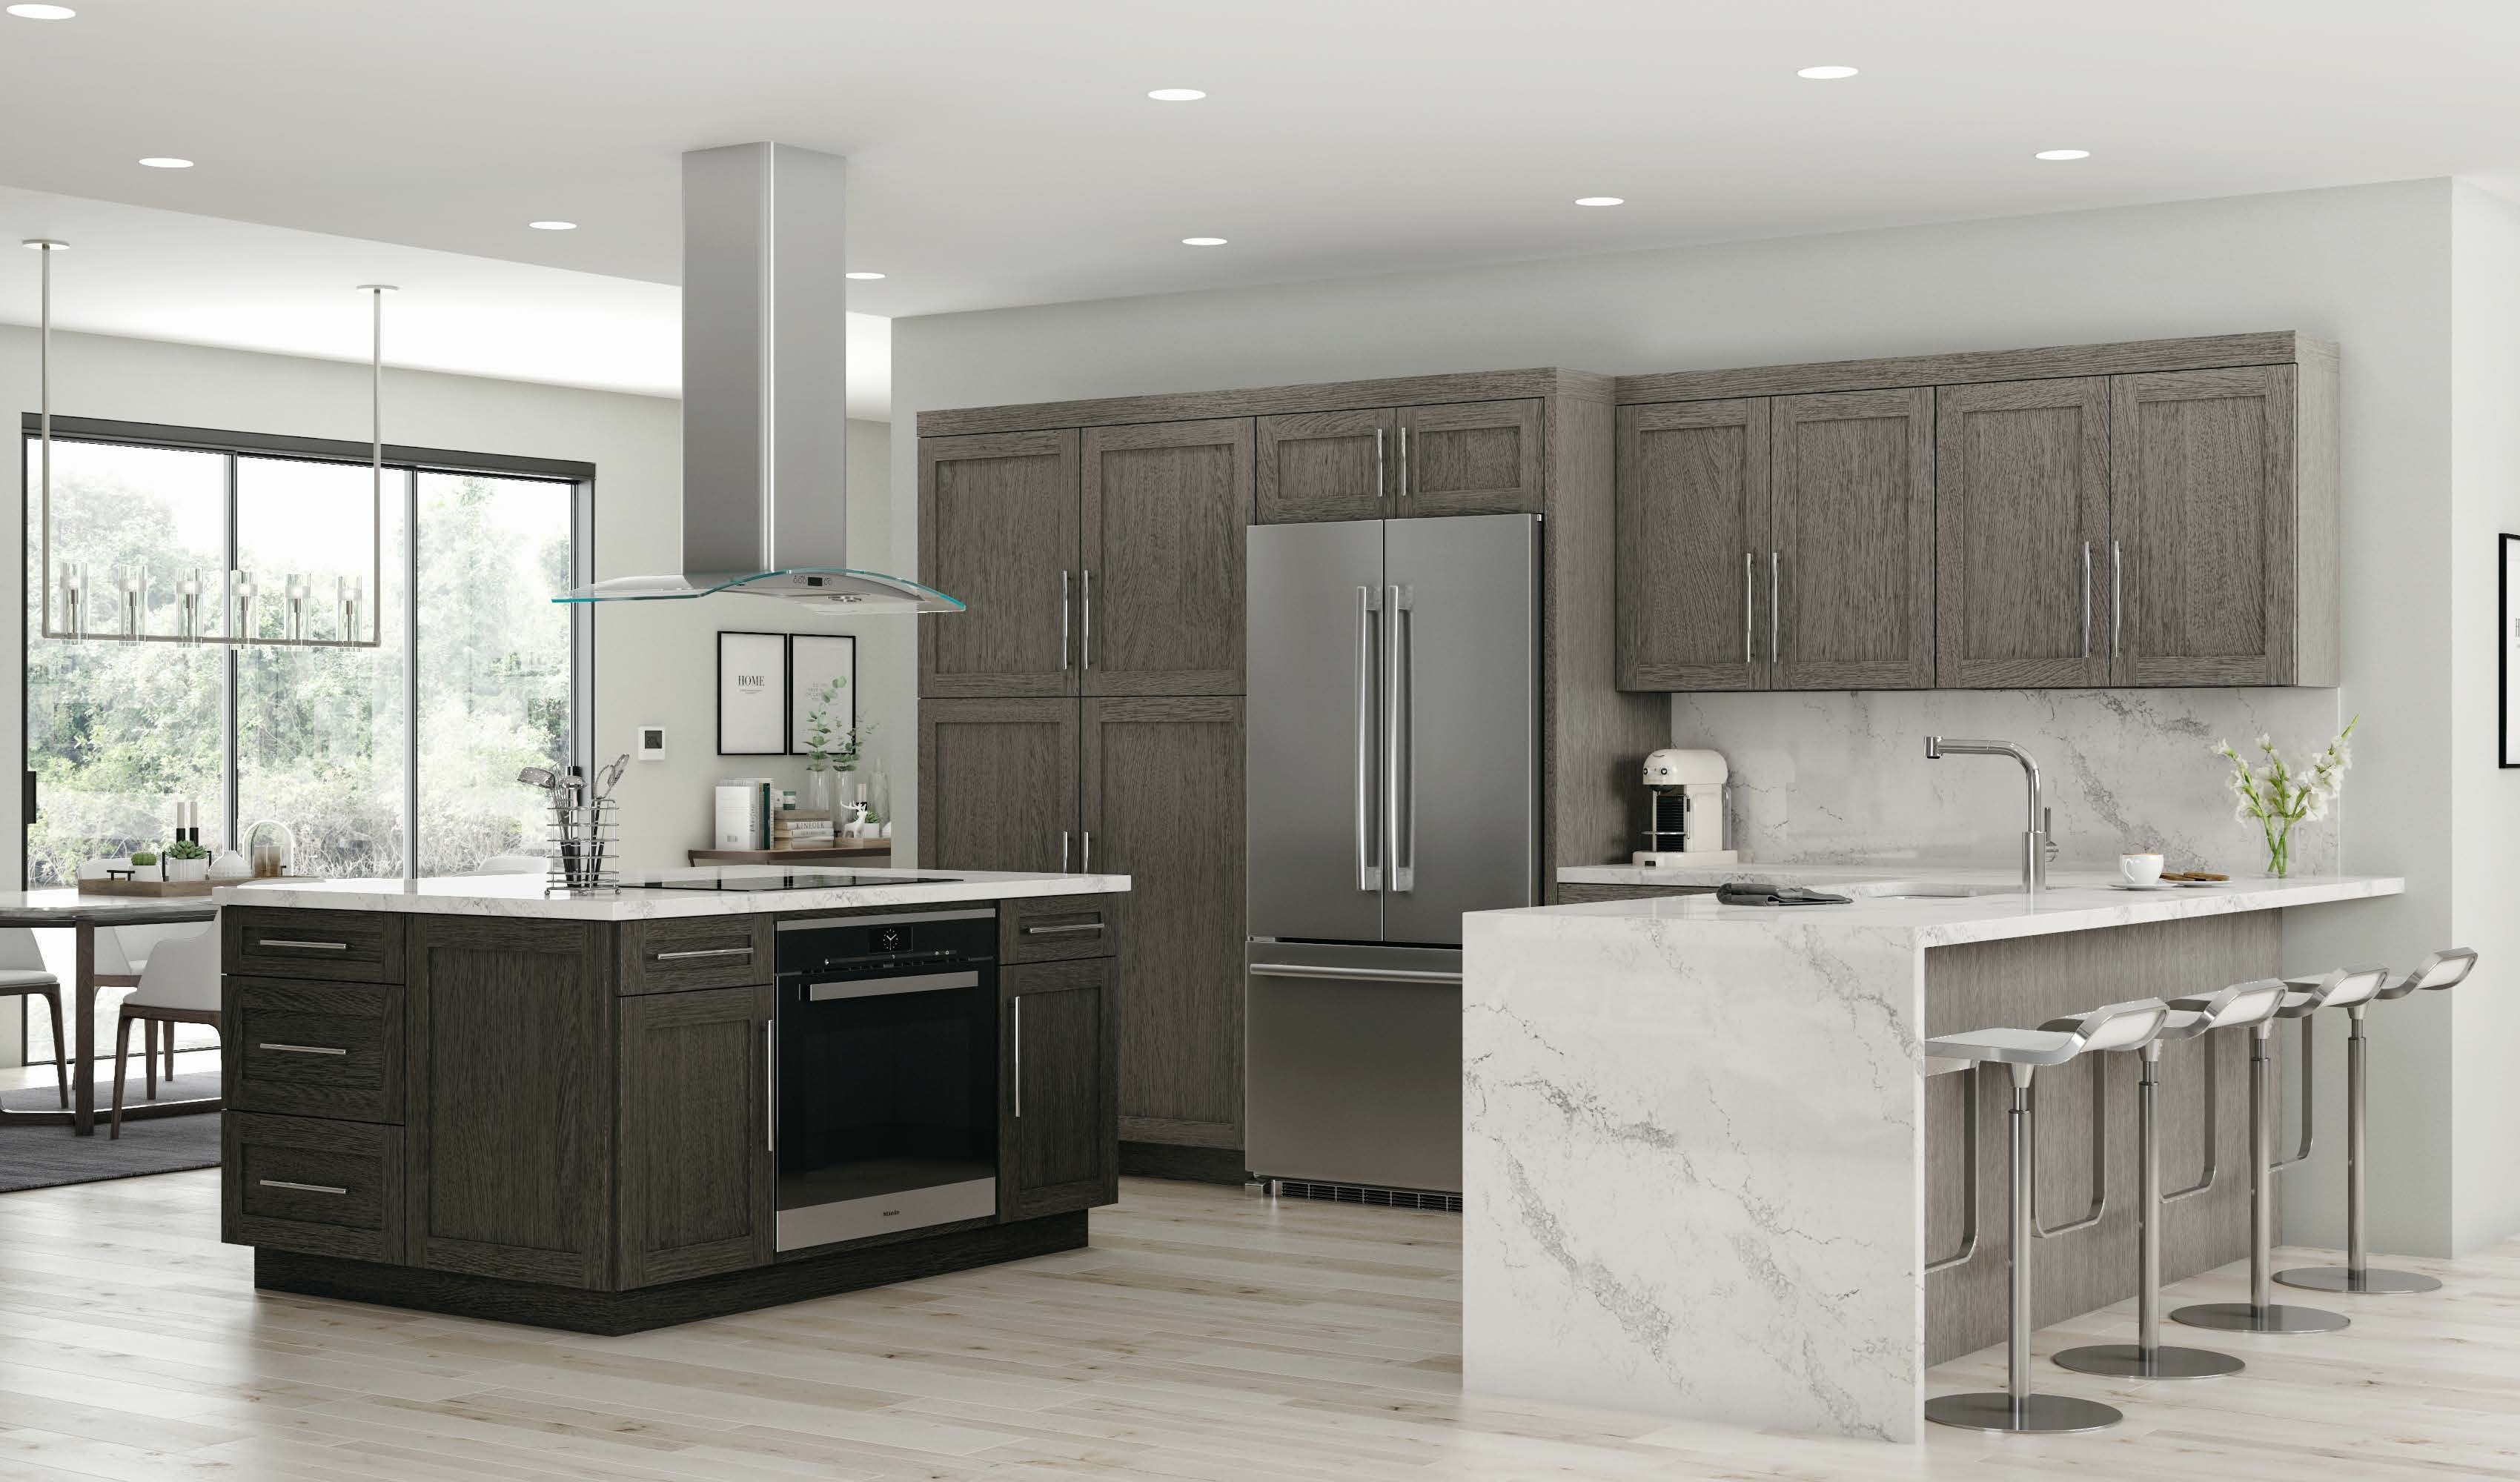 The Oxford Door Style Is A Sophisticated And Classic Design Durability Ease Of Main Affordable Kitchen Cabinets Online Kitchen Cabinets Kitchen Remodel Small